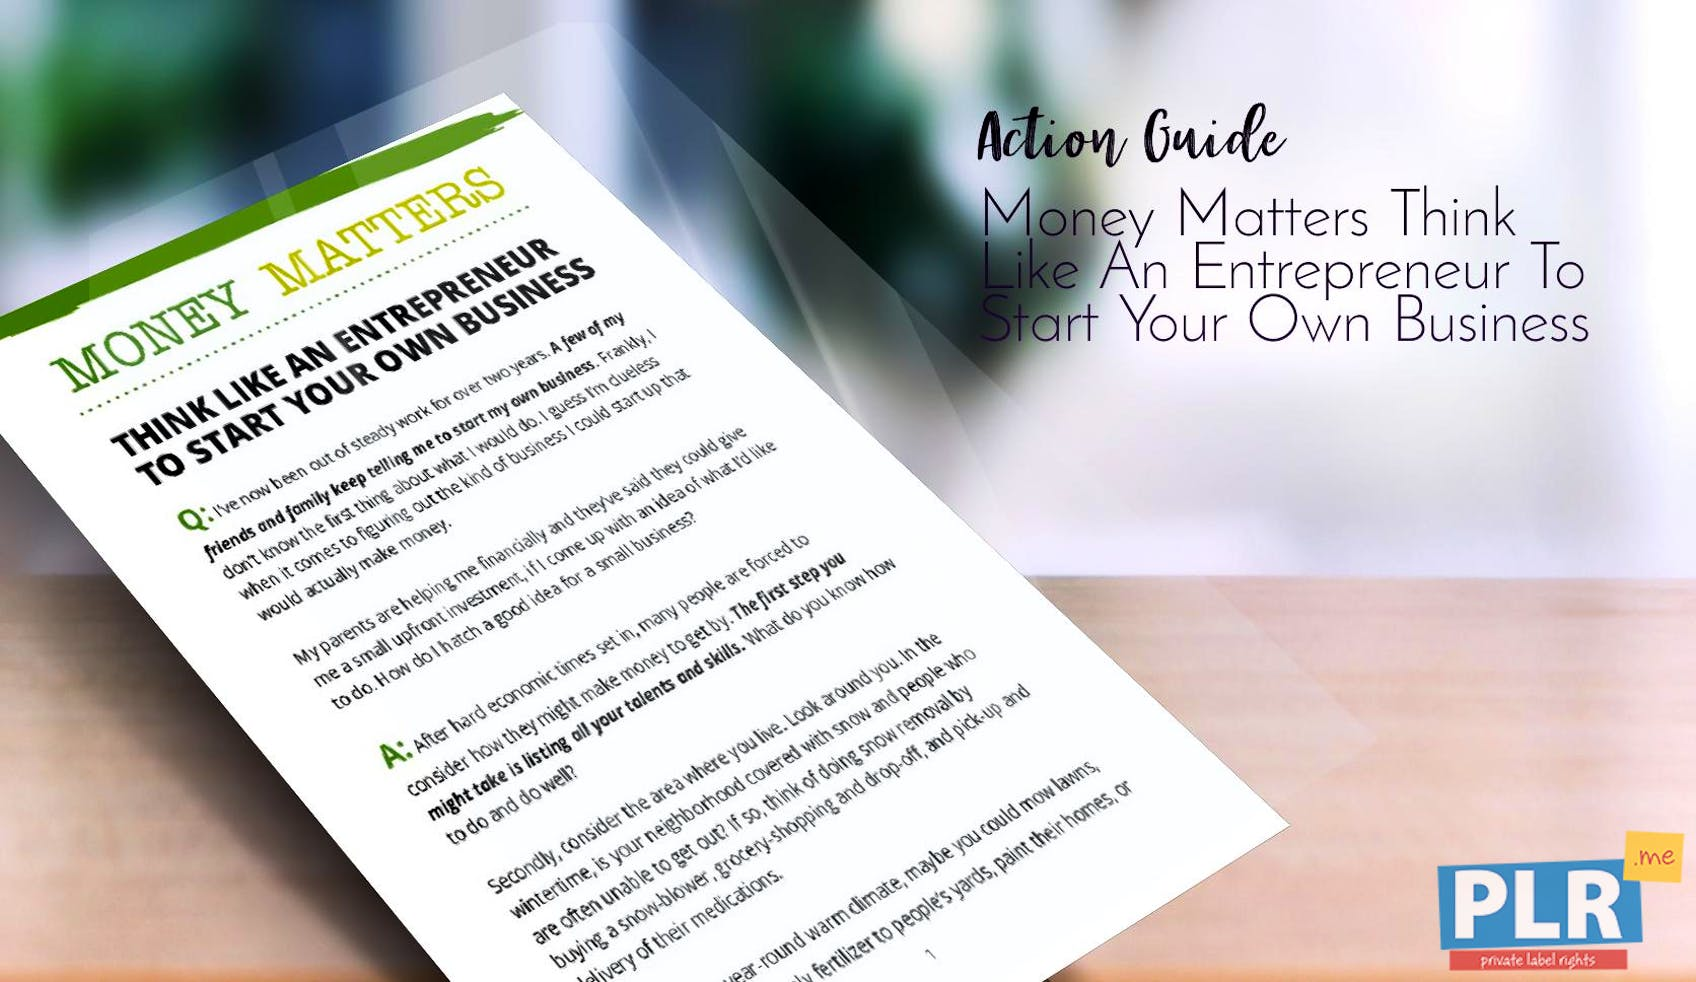 Money Matters Think Like An Entrepreneur To Start Your Own Business